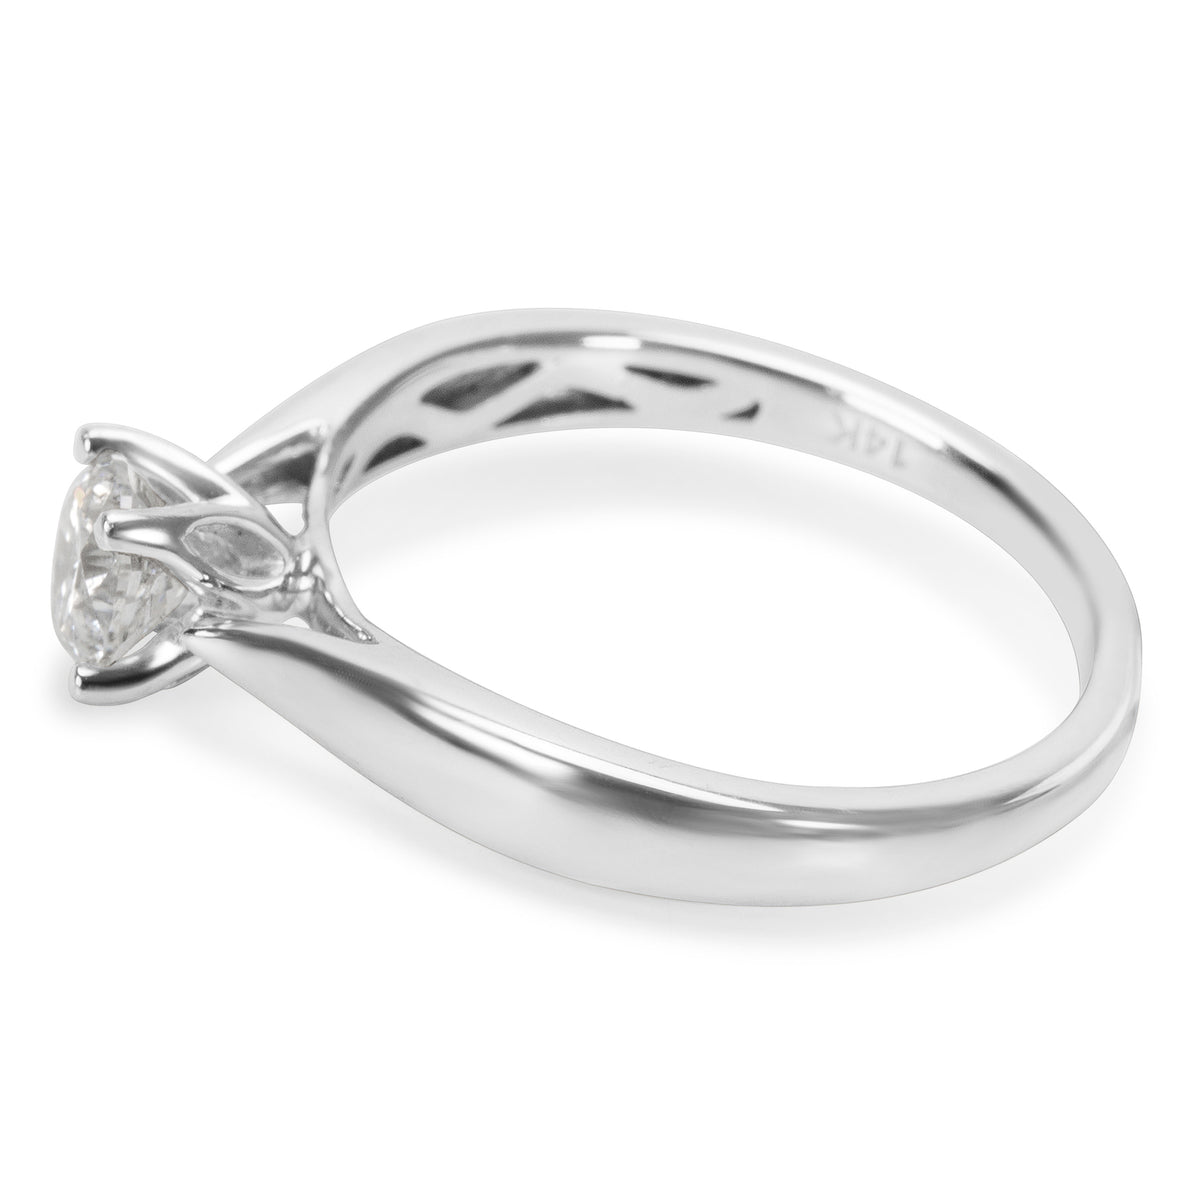 BRAND NEW Solitaire Engagement Ring in 14K White Gold with Diamonds (0.55 CTW)